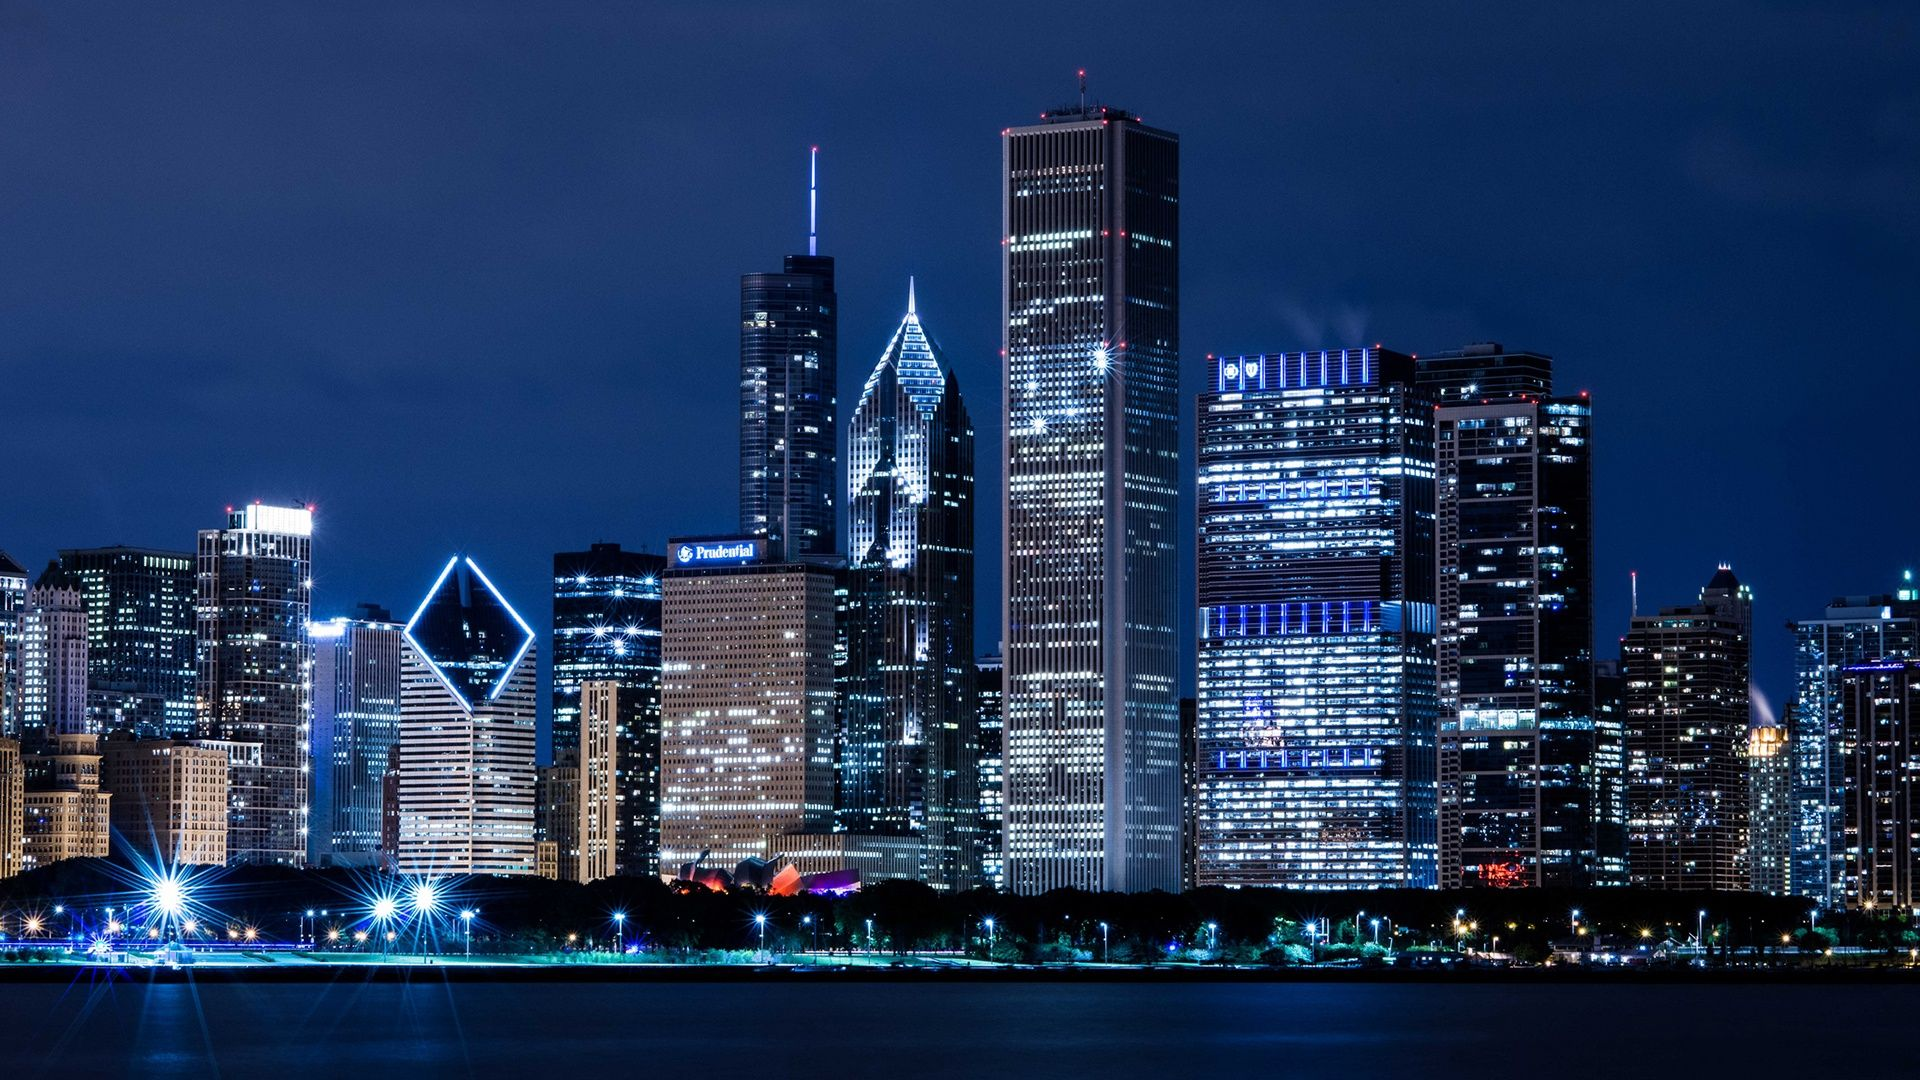 Windy City Skyline Wallpaper design Ideas That You Can Use